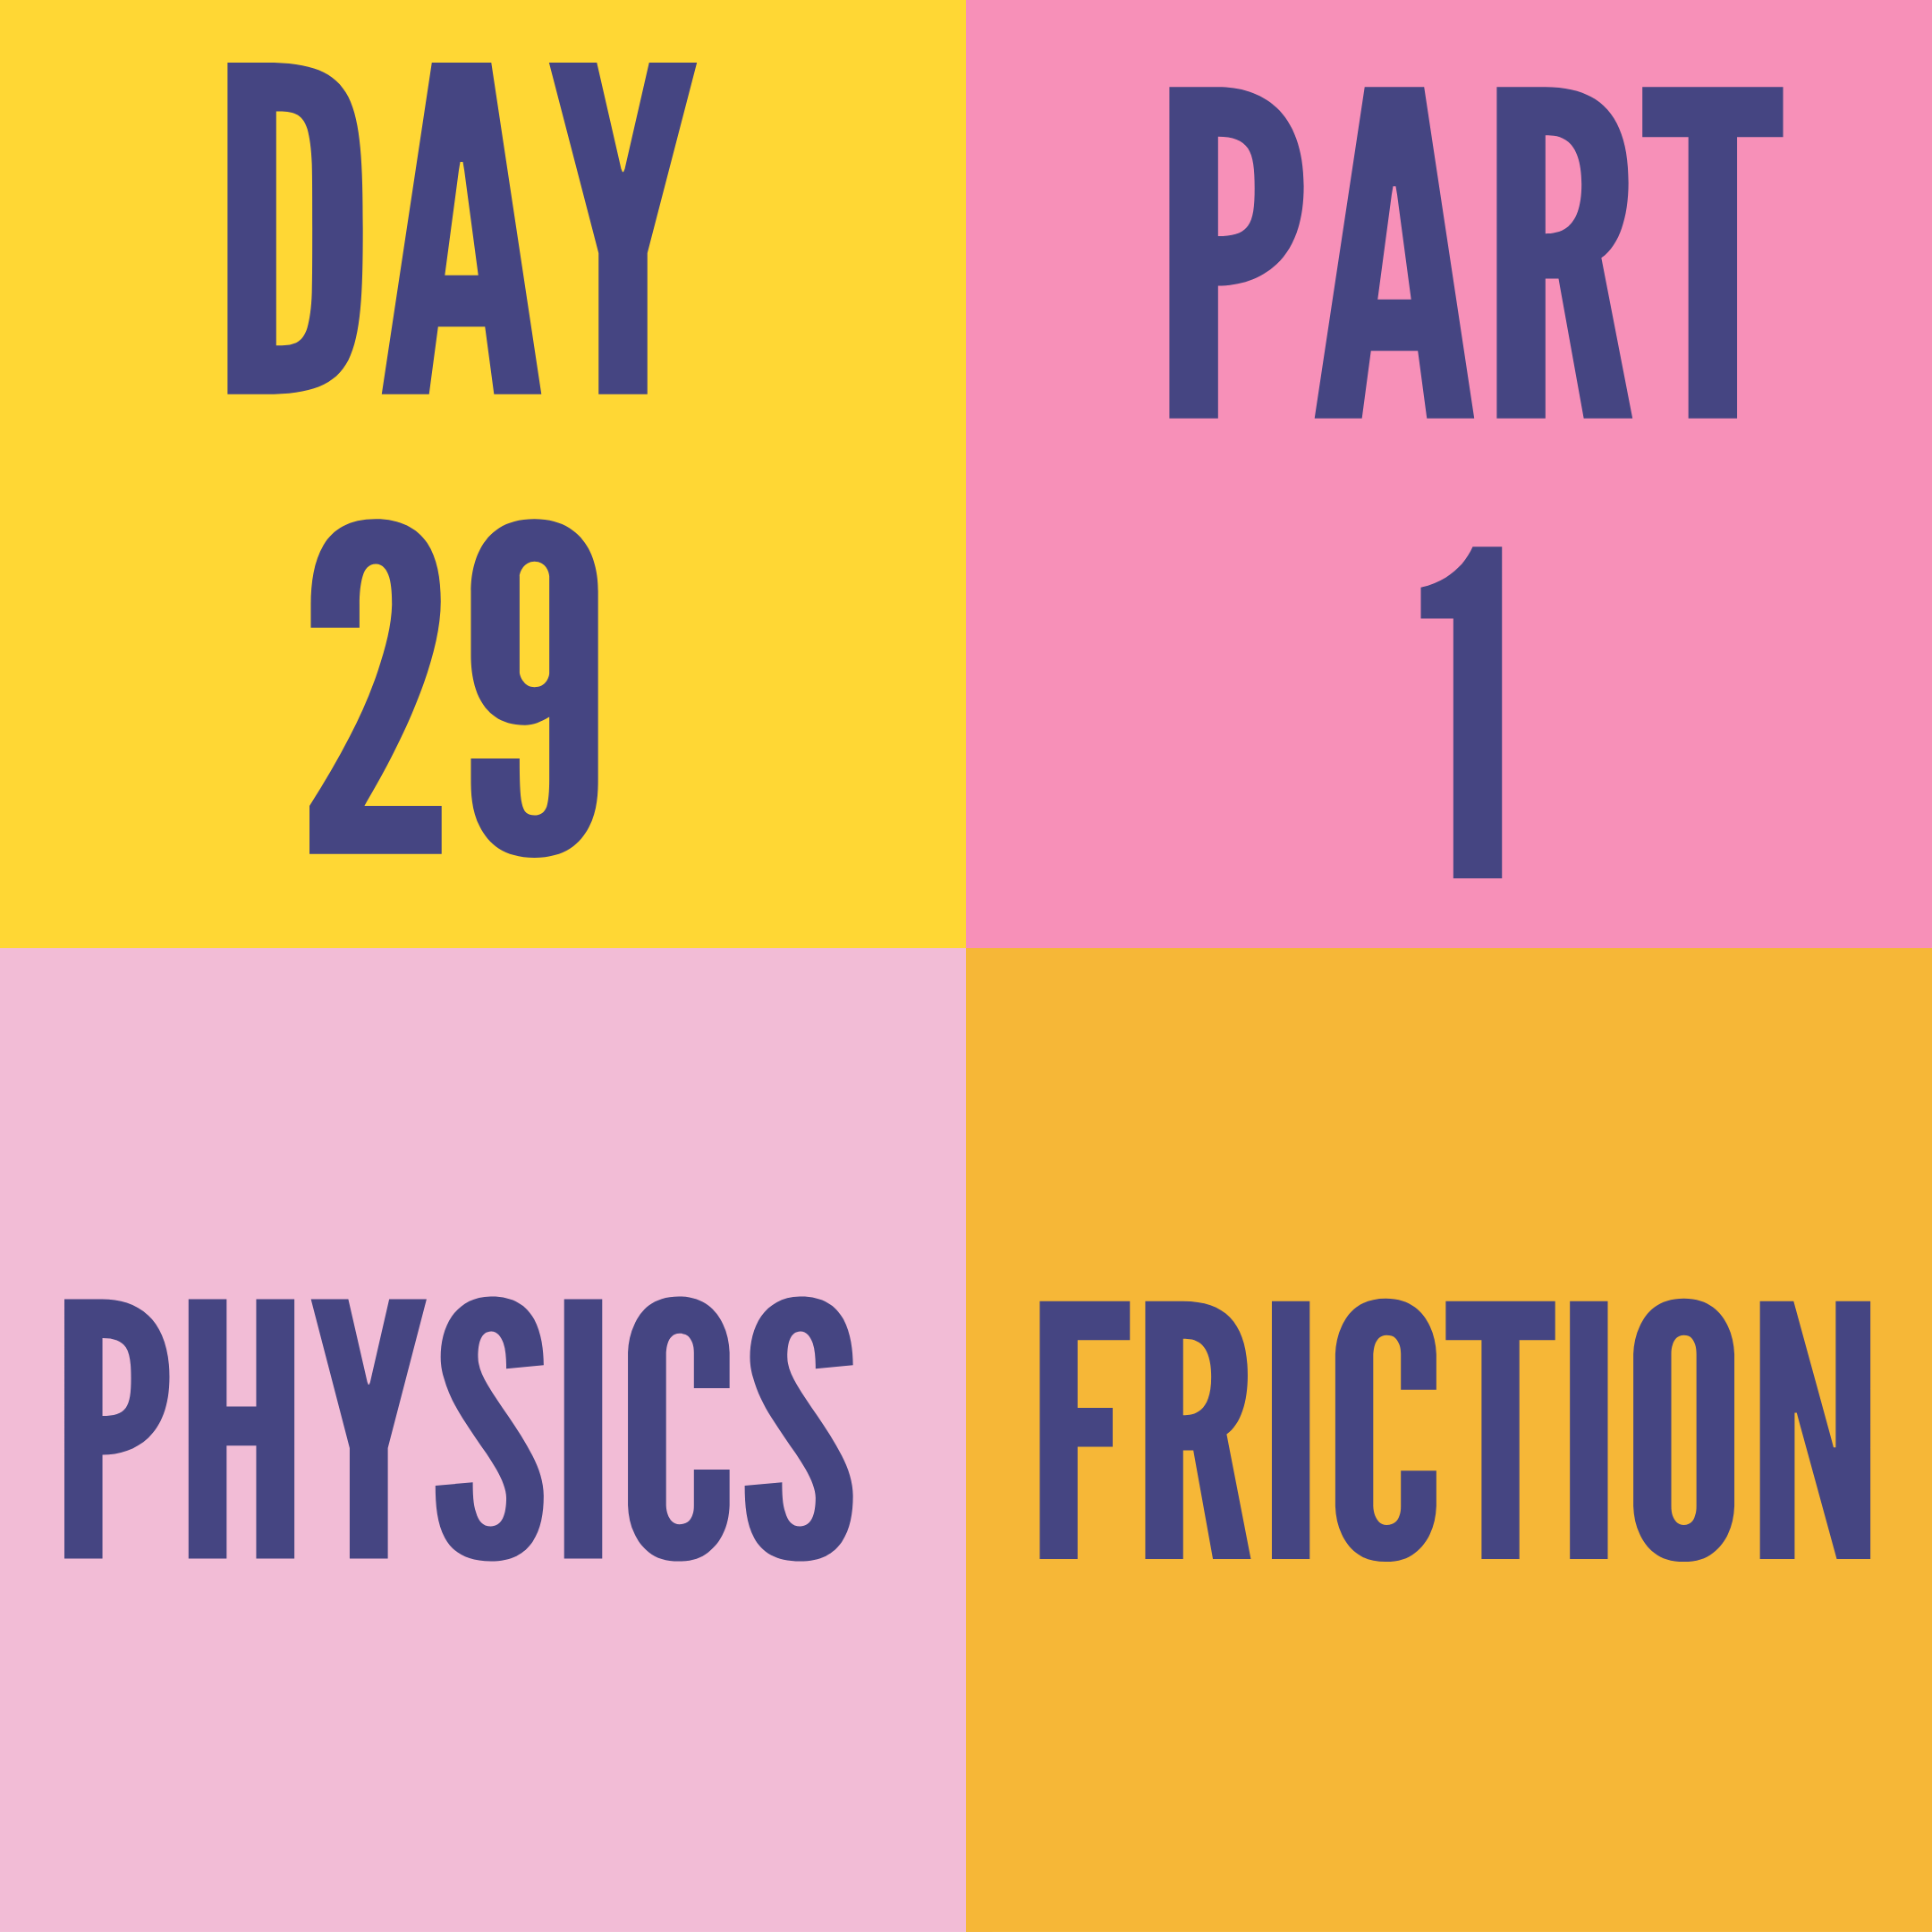 DAY-29 PART-1 FRICTION